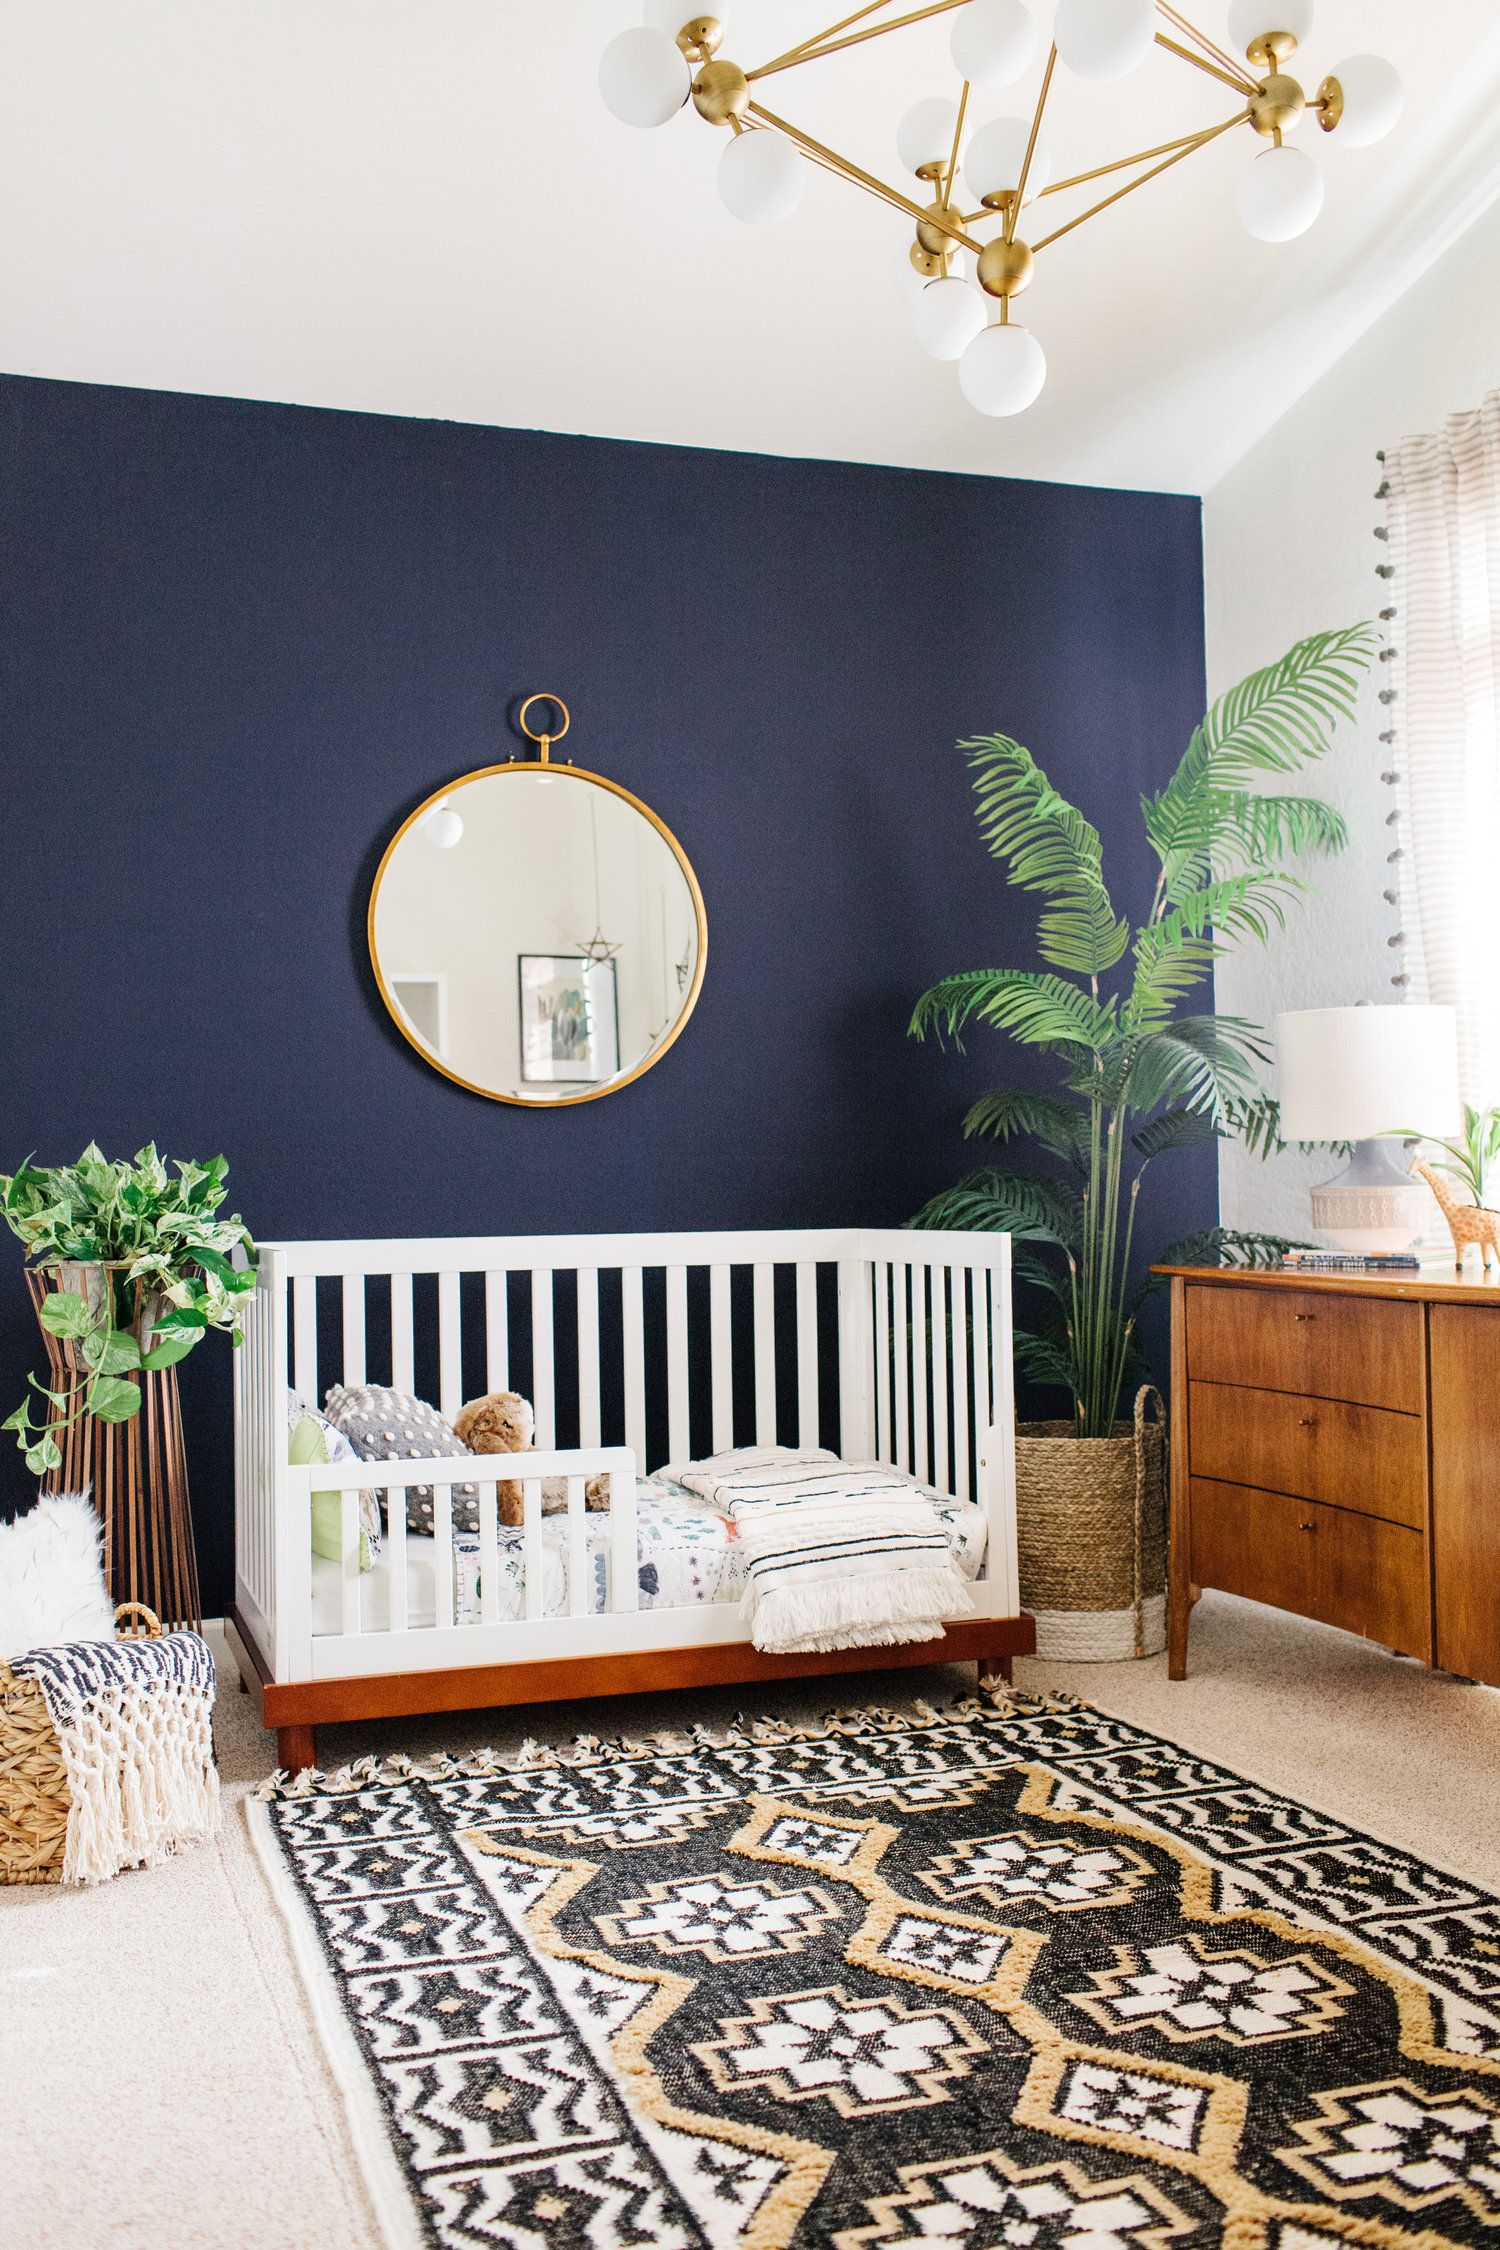 white modern toddler crib with boho rug, plants and gold hoop mirror.